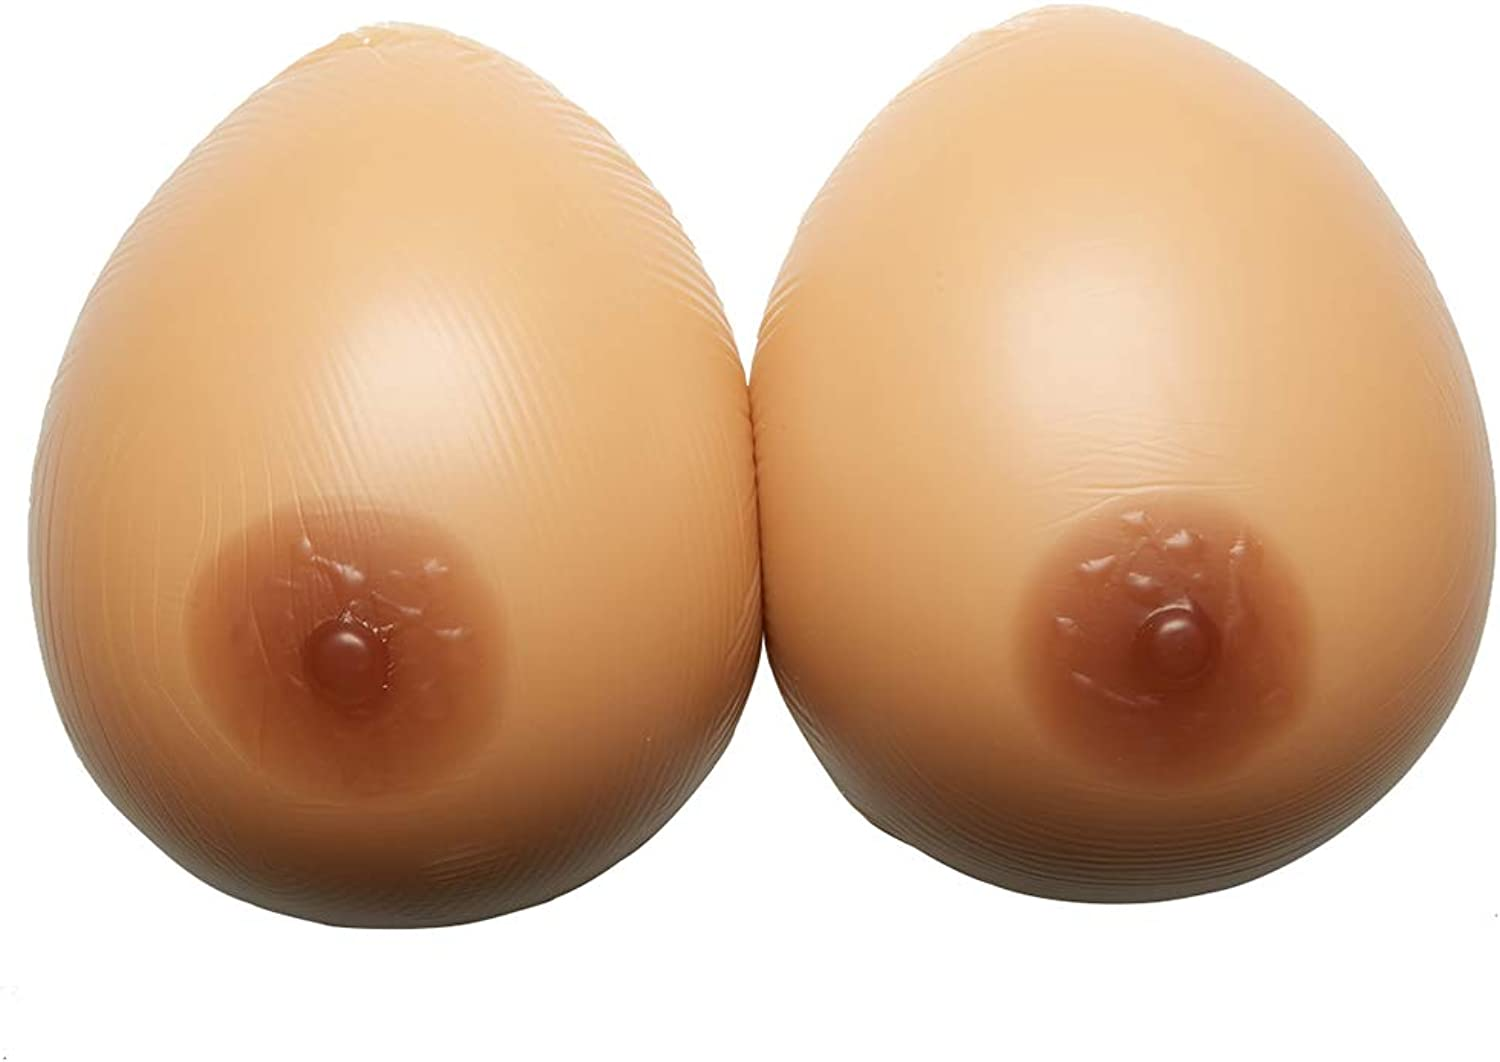 1 Pair Waterdrop Silicone Breast Forms Chest Enhancer for Cosplay Cross Dresser